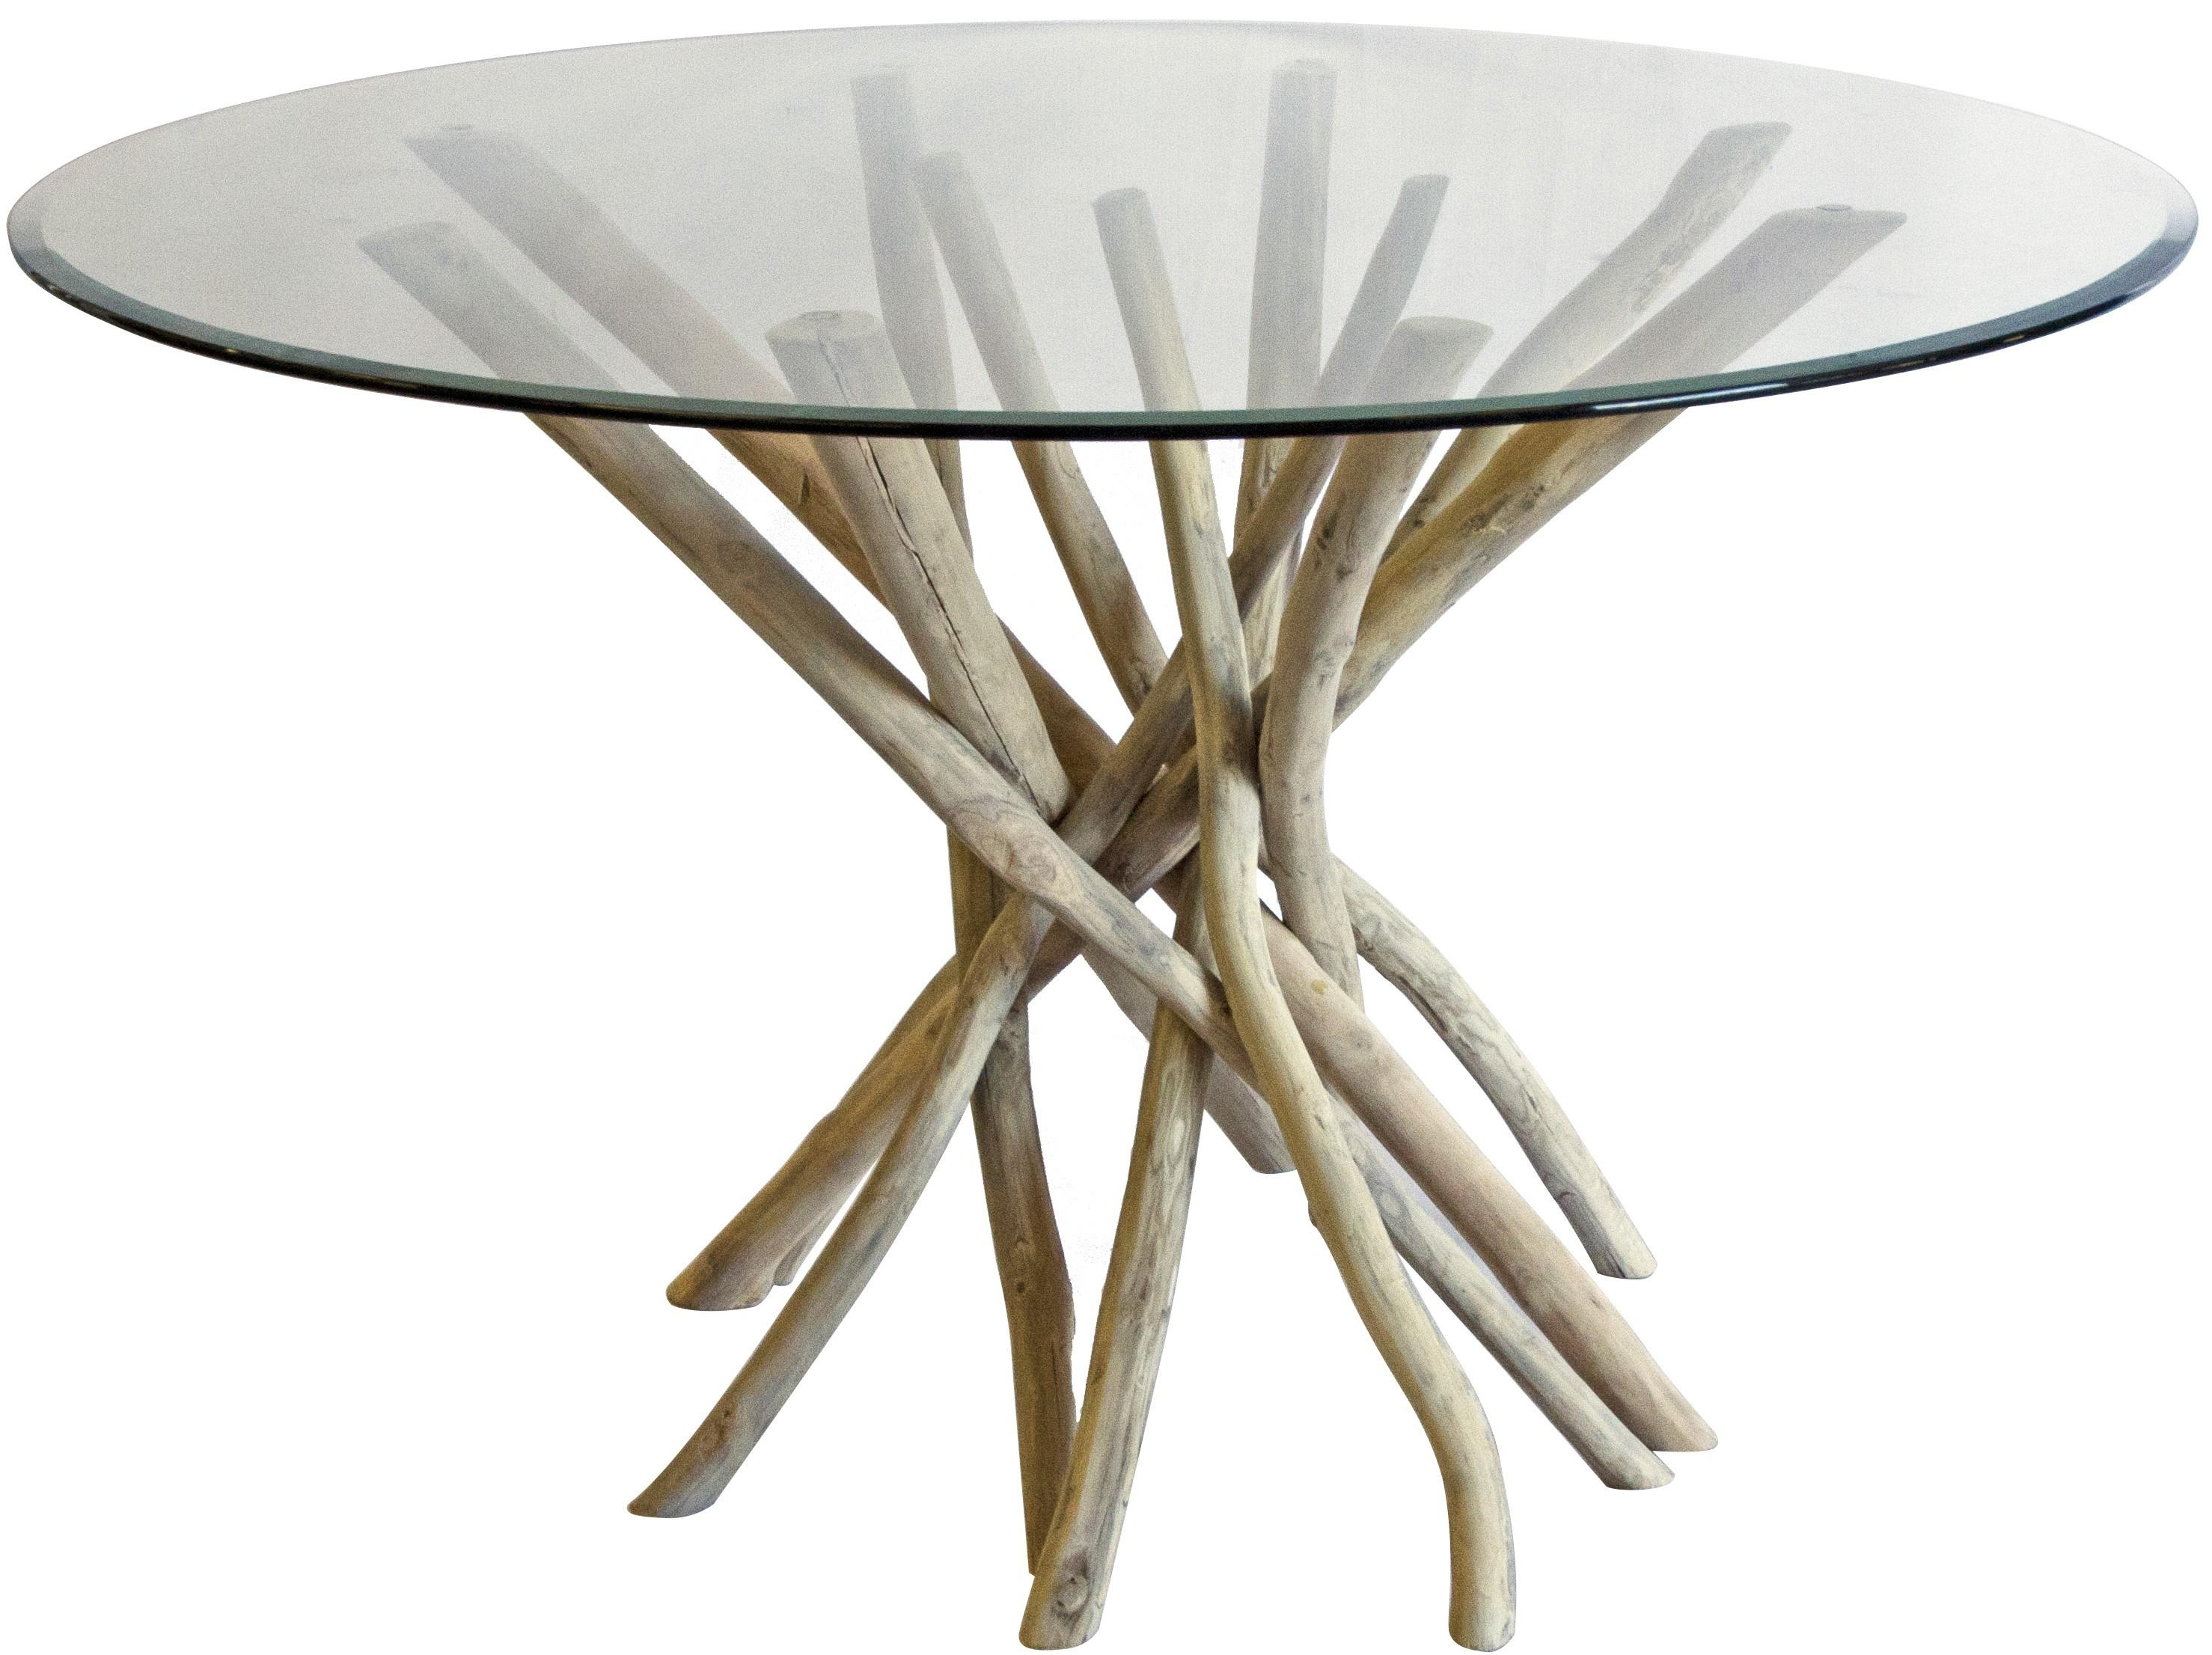 Beautiful Driftwood Style Dining Table Light Room